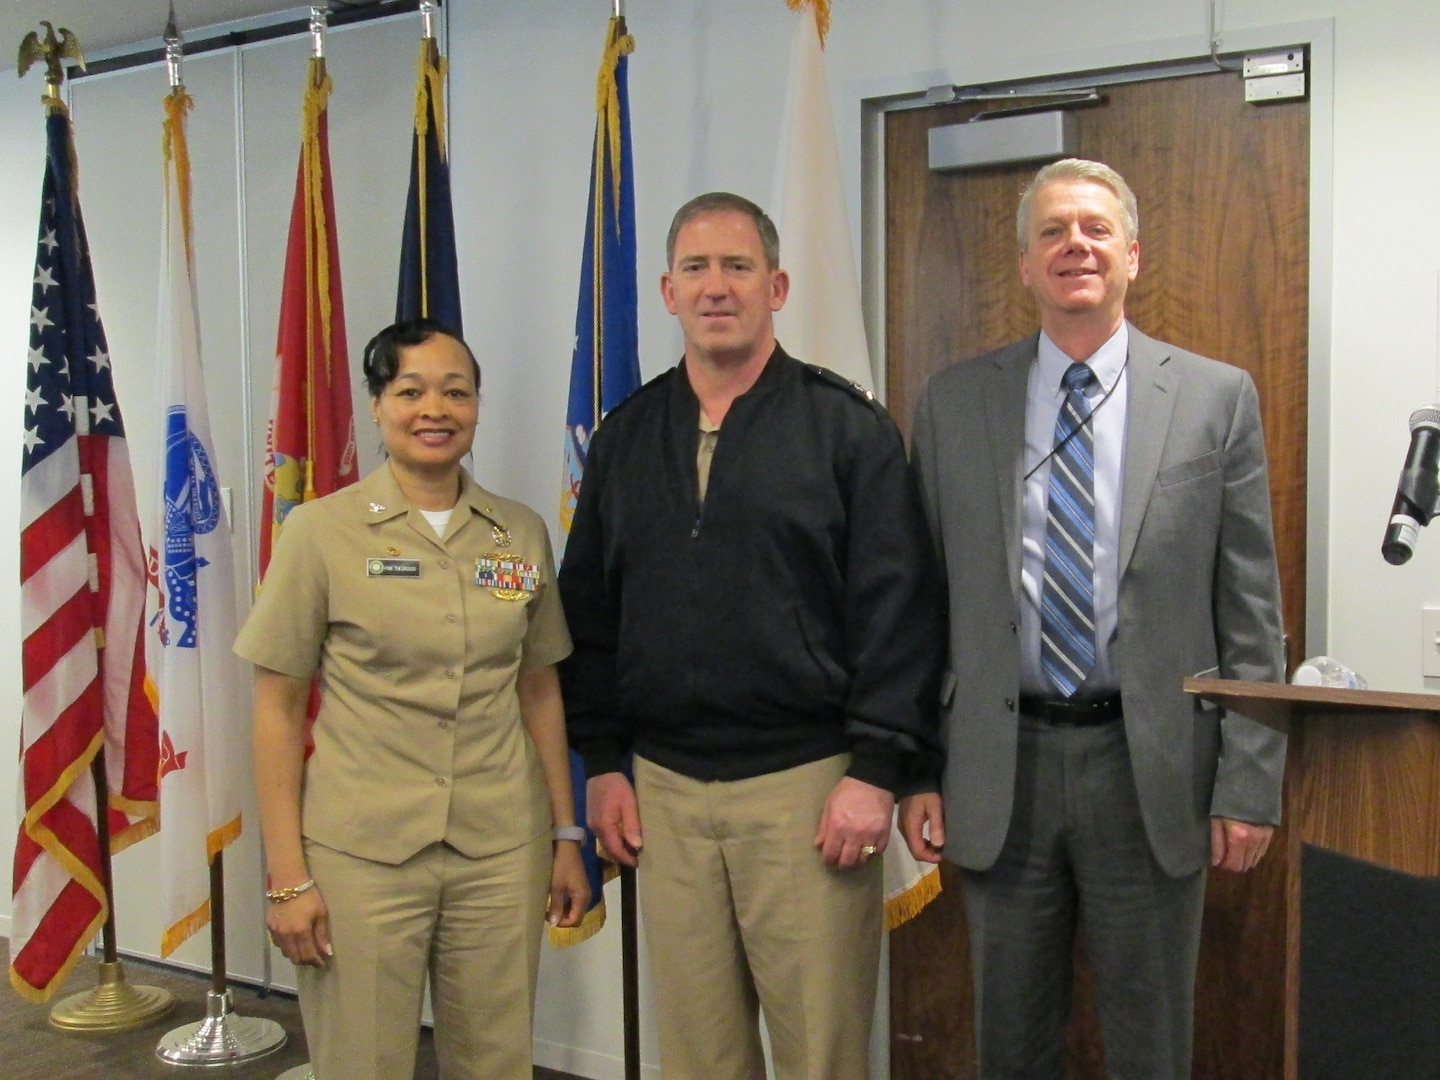 Navy Rear Adm. John Polowczyk (center), vice director for logistics on the Joint Chiefs of Staff, briefed the Defense Contract Management Agency Manassas team based in Chantilly, Virginia, on the National Defense Strategy, the joint strategic environment, and the important role DCMA plays in advancing the nation's defense objectives. Pictured from left to right: Navy Capt. Pamela Theorgood, DCMA Manassas commander; Polowczyk; and Stephen Sloboda, DCMA Manassas deputy commander. (Photo courtesy of DCMA Manassas)